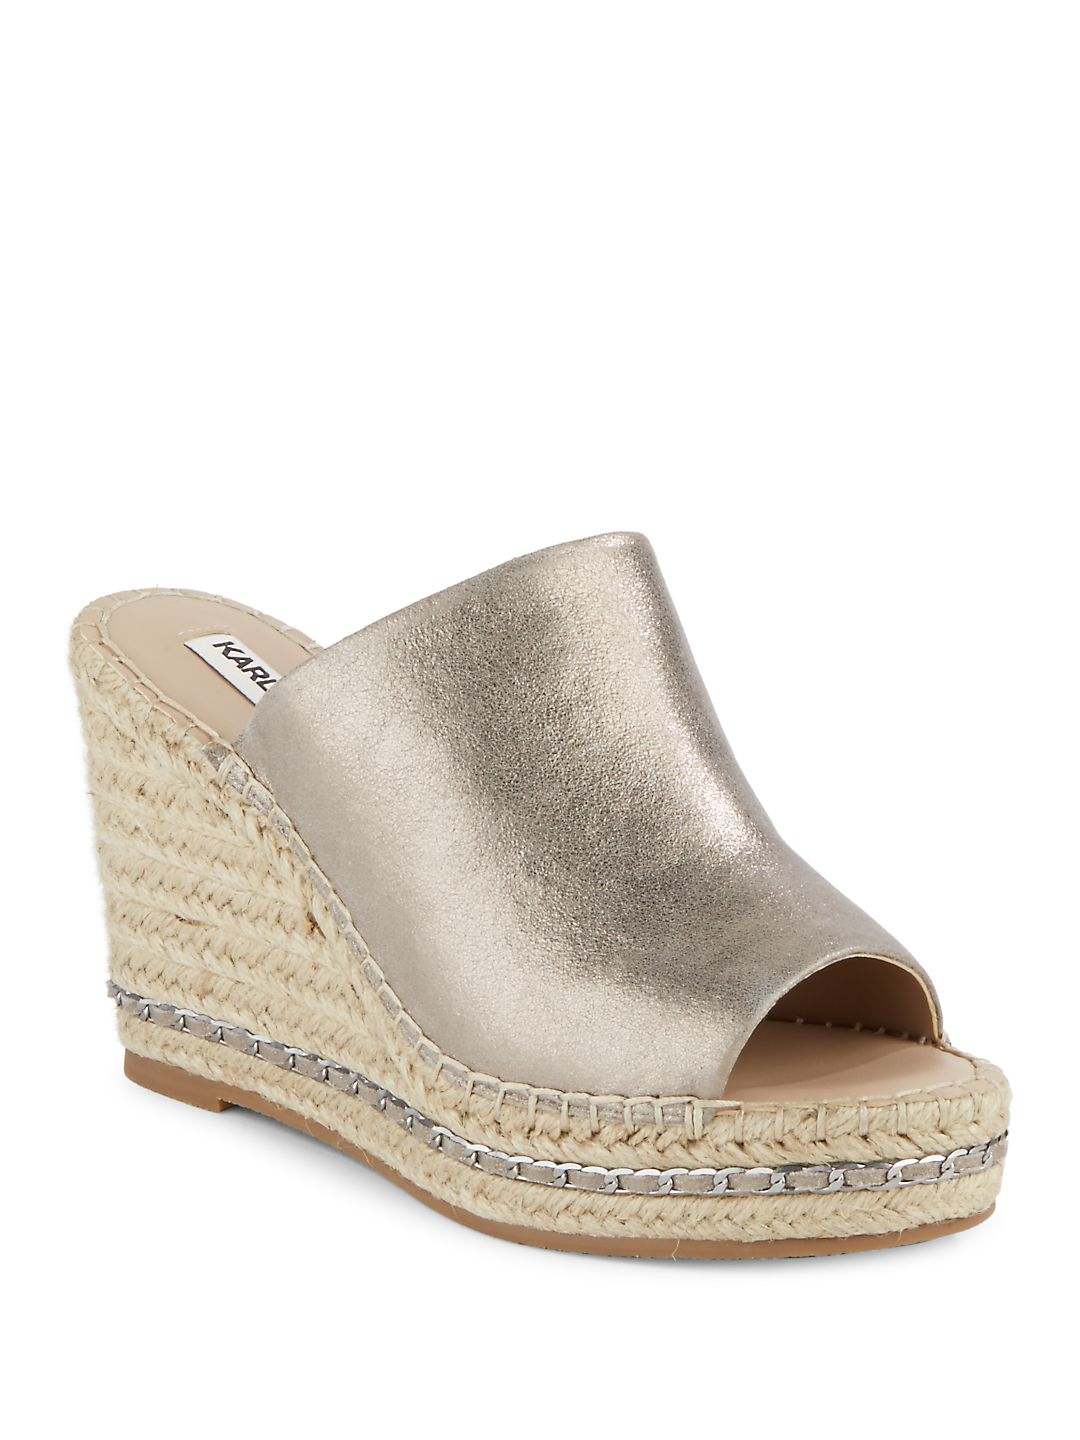 Carina Leather Espadrille Wedges